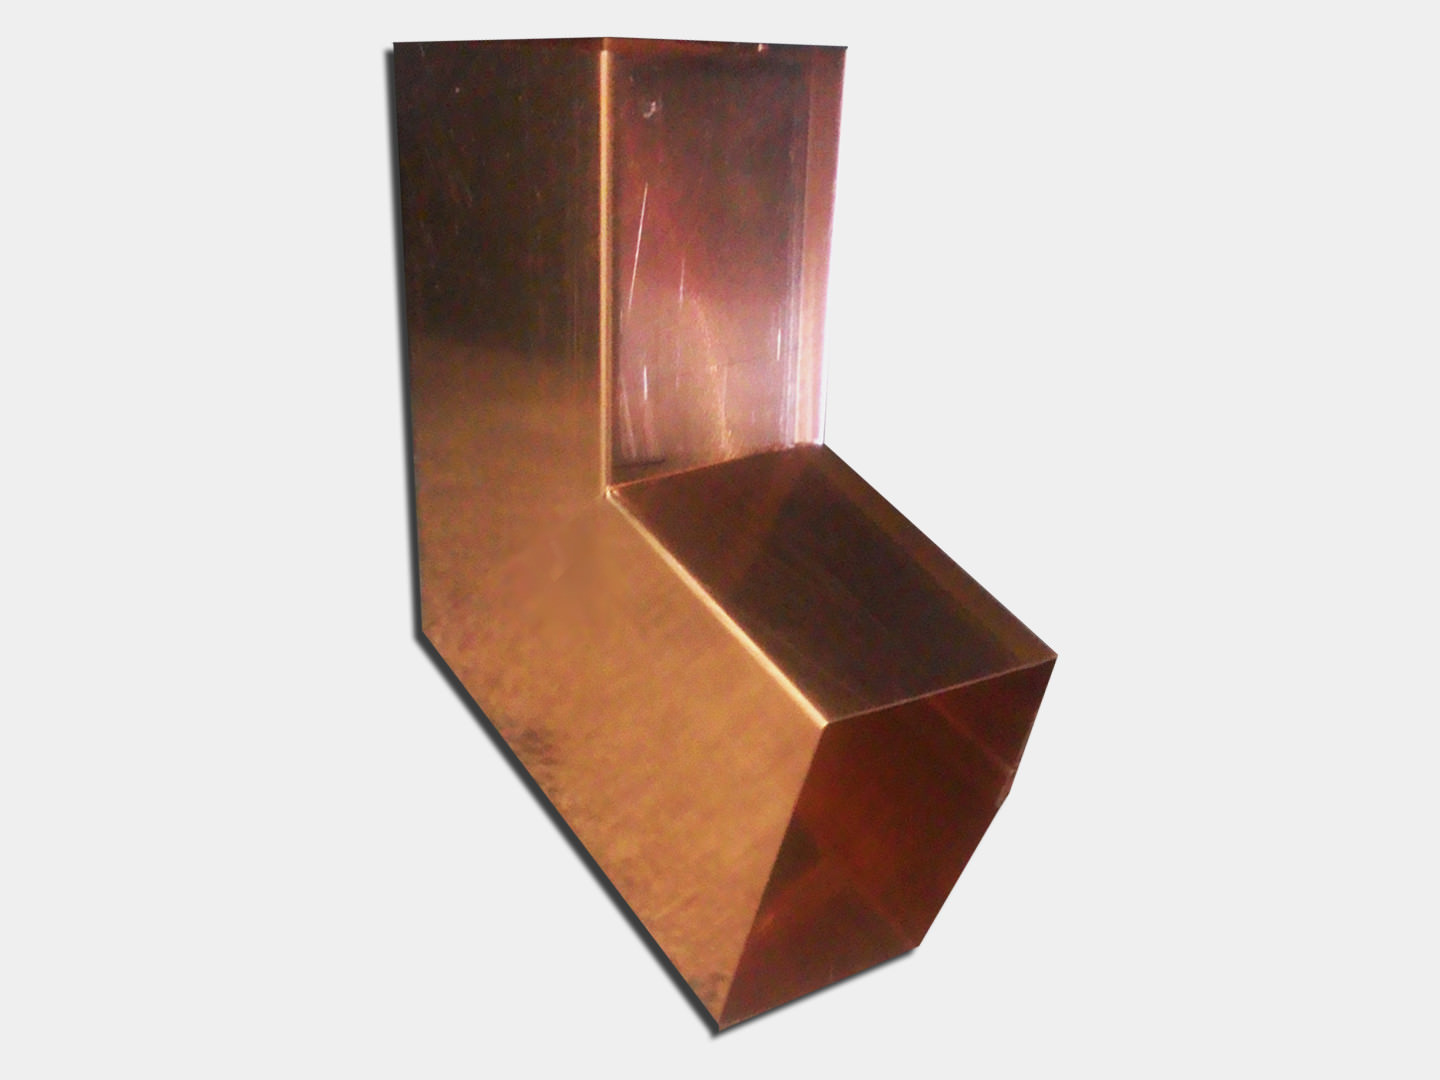 Plain square b elbow for copper downspout